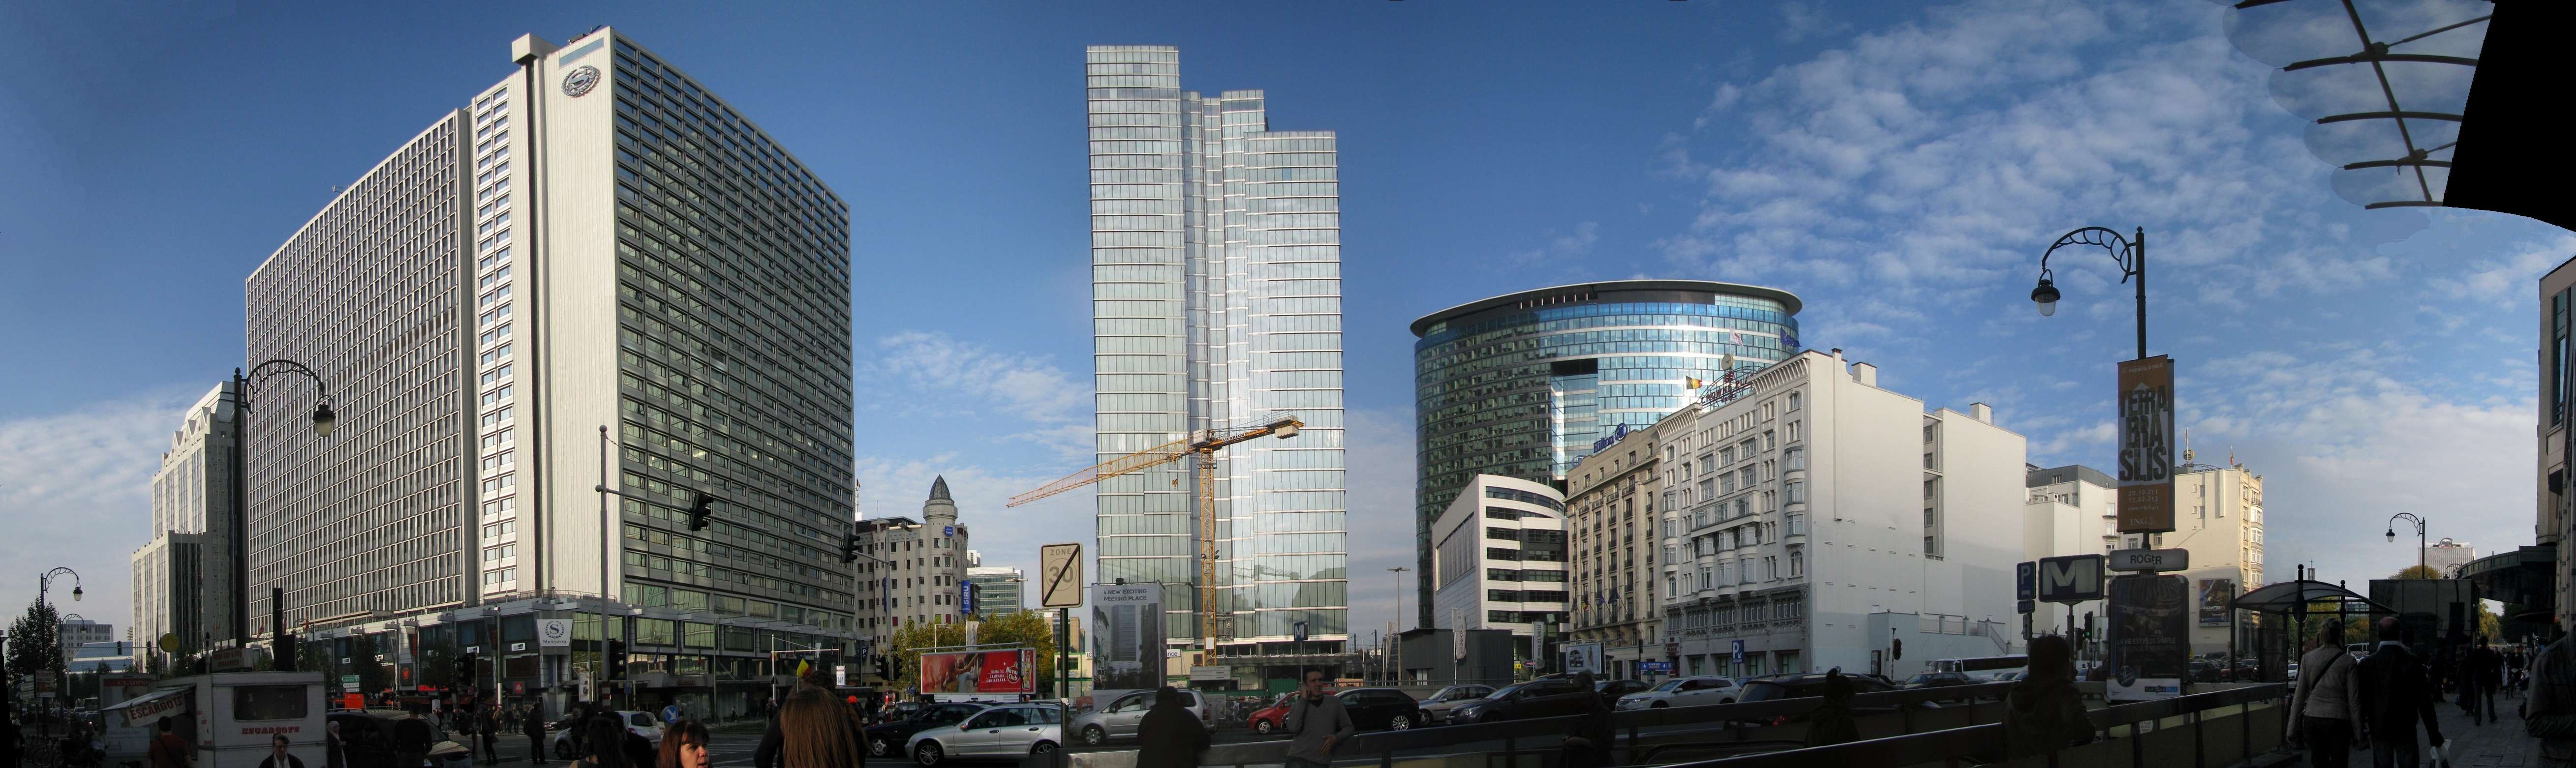 Brussels_Place_Rogier_et_ses_Tours_-_panoramio